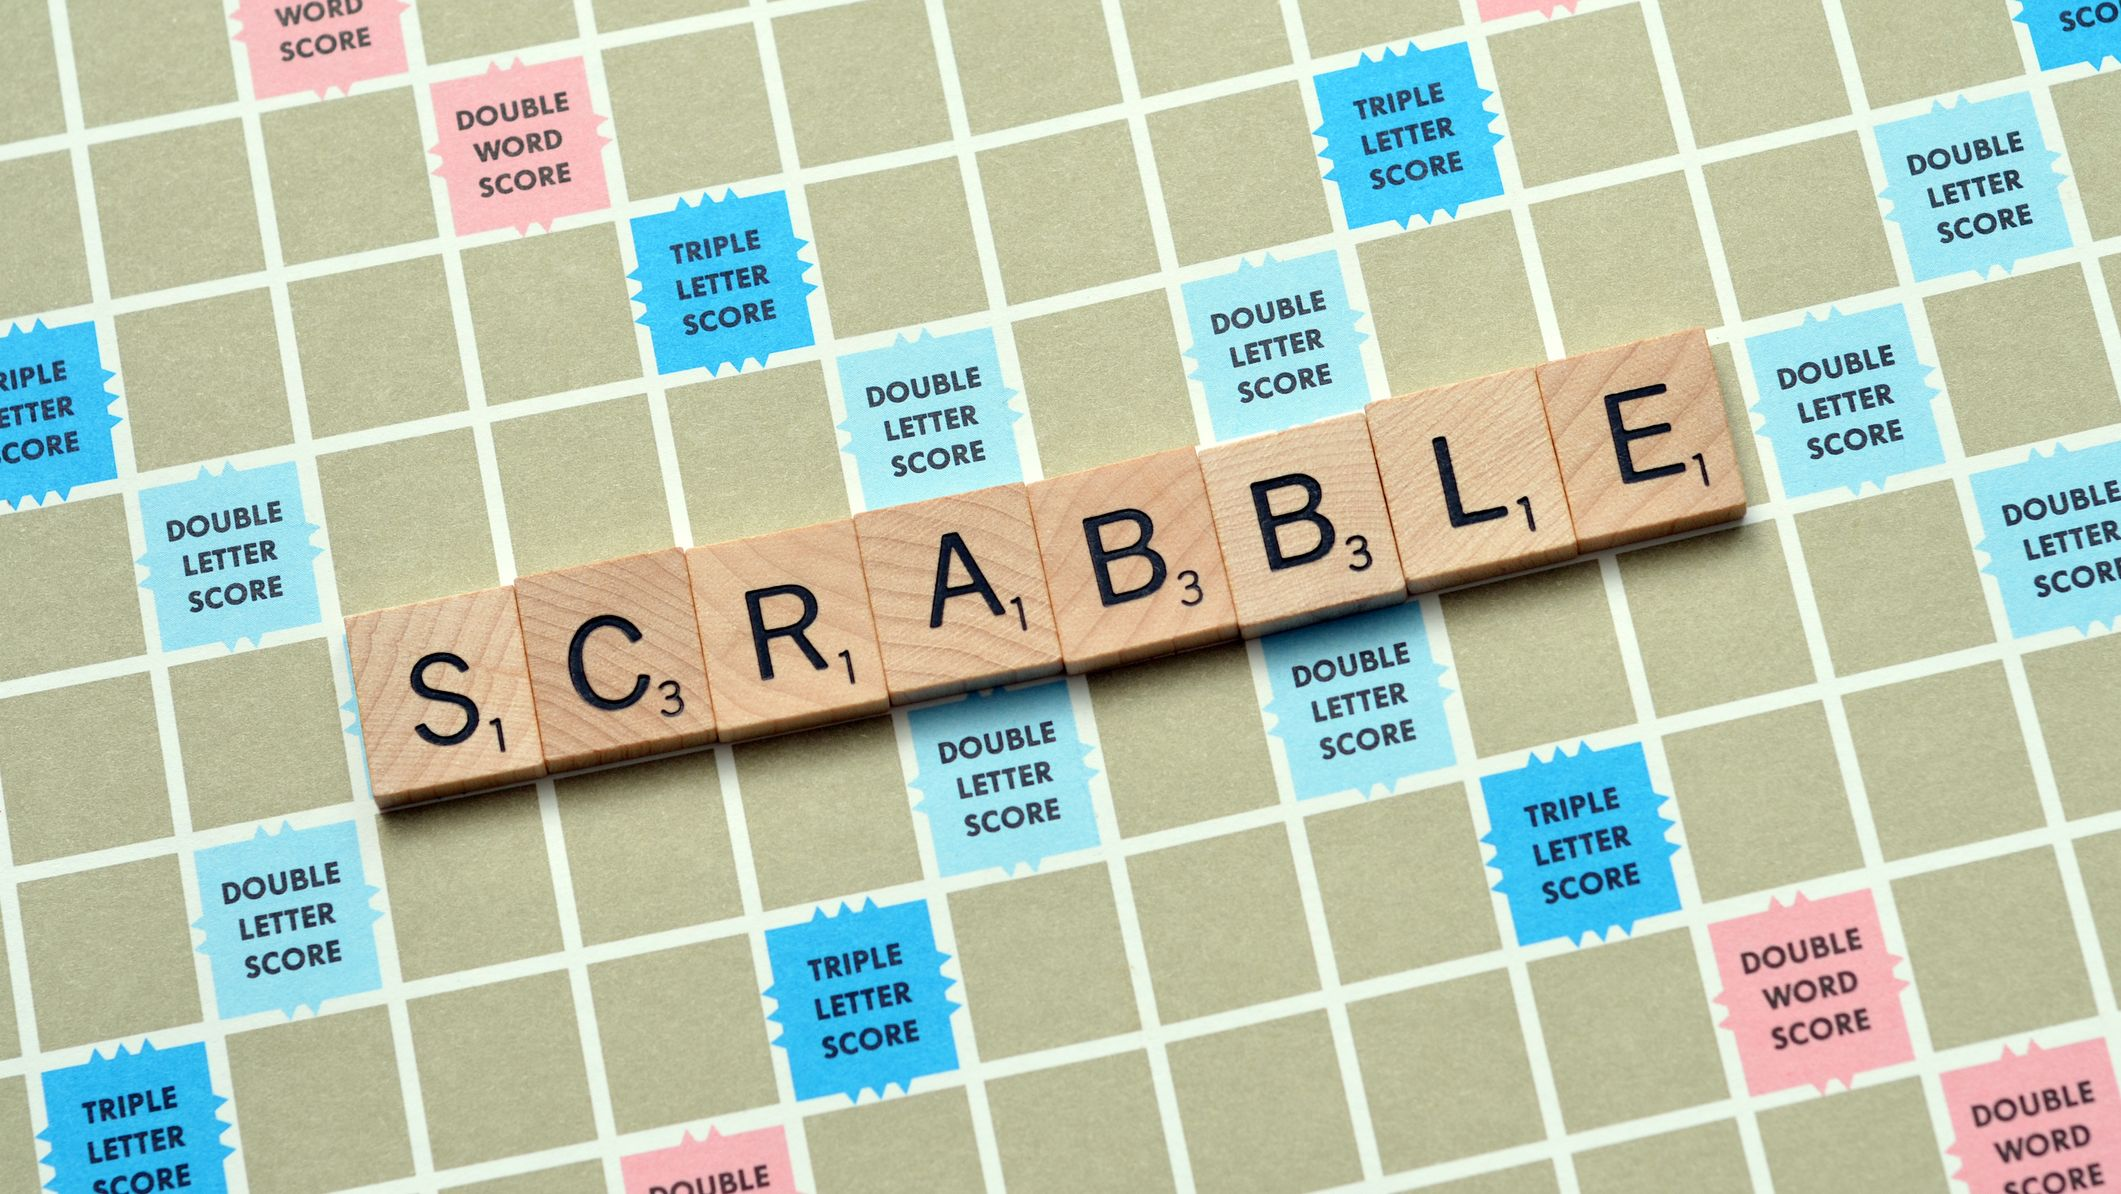 10 Words That Will Win You Any Game of Scrabble | Mental Floss